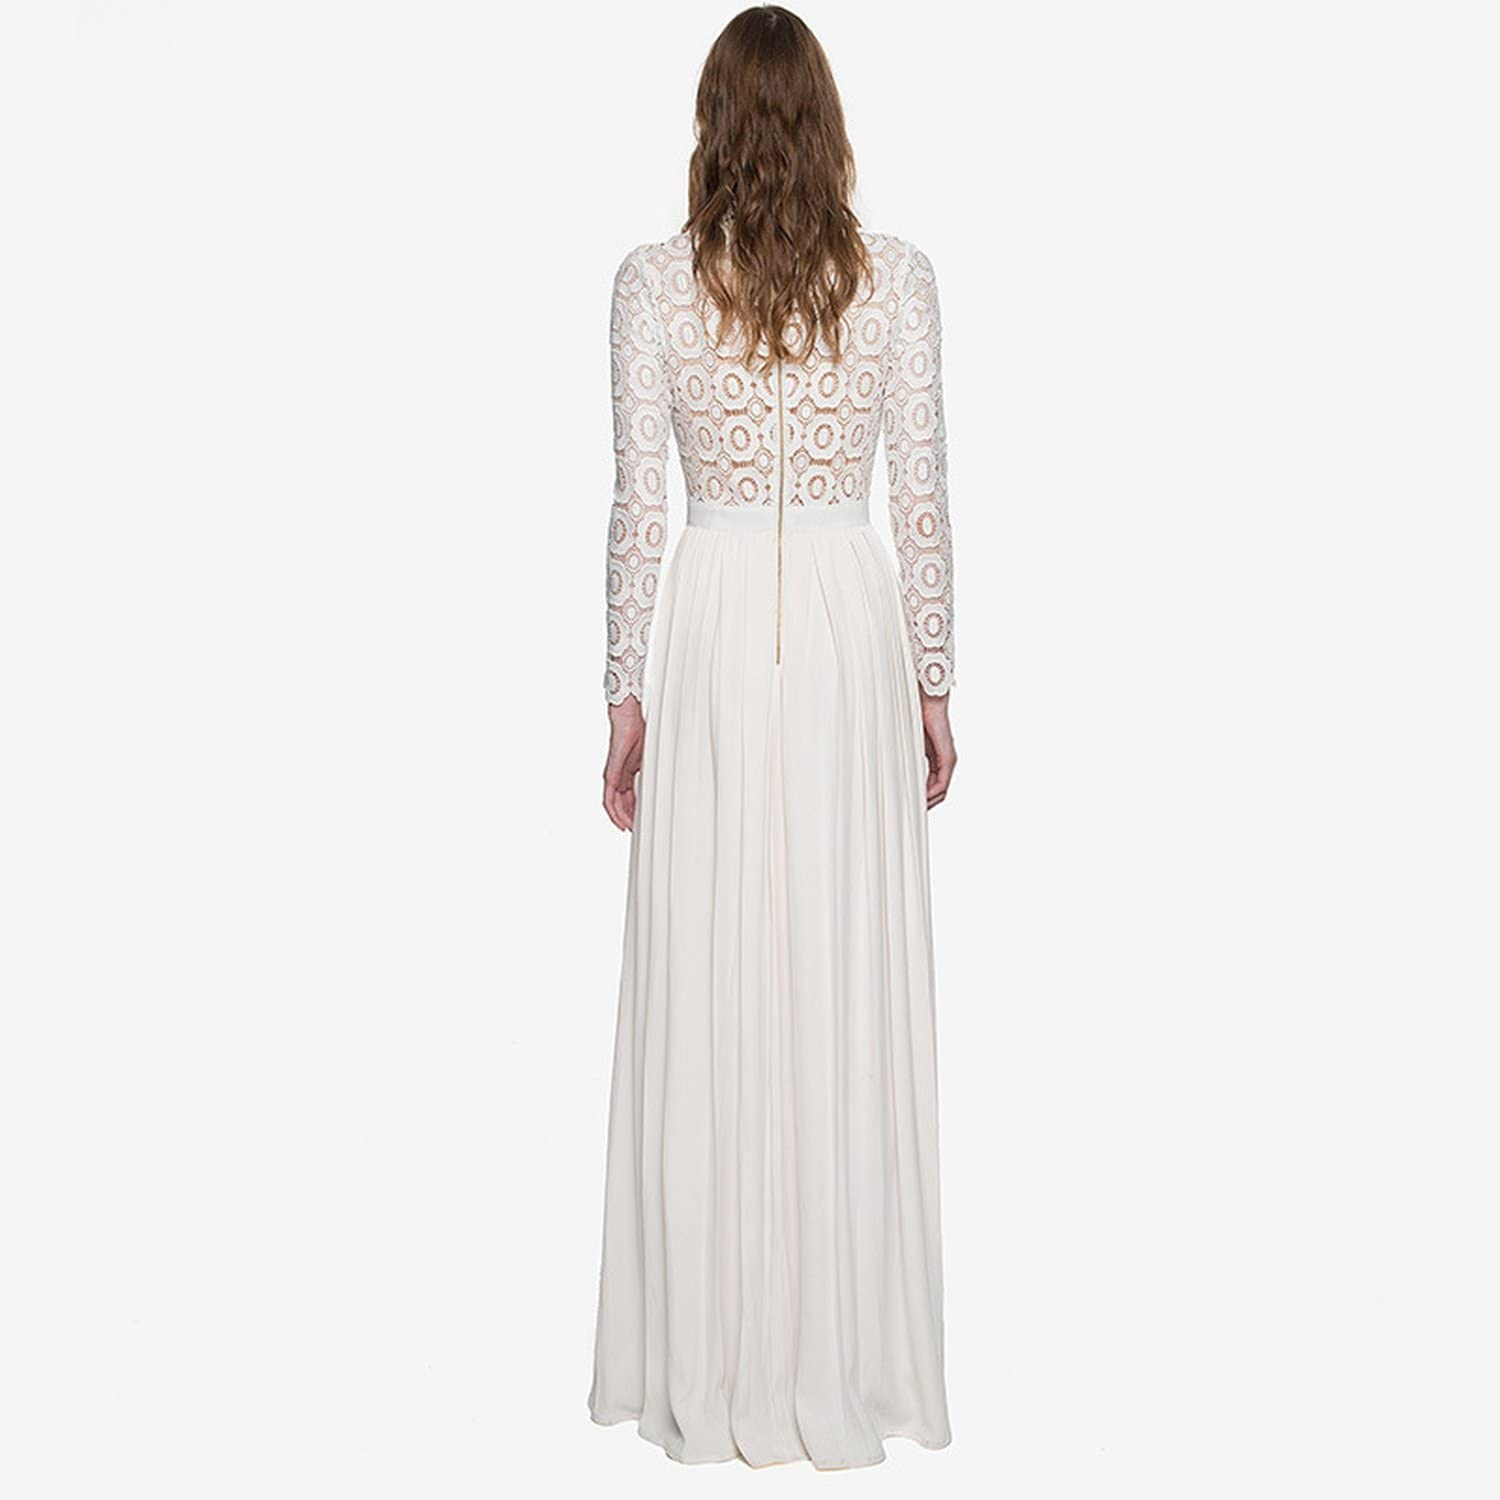 European and American Long-Sleeved Half-high Collar Lace Hollow Stitching Pleated Dress spot